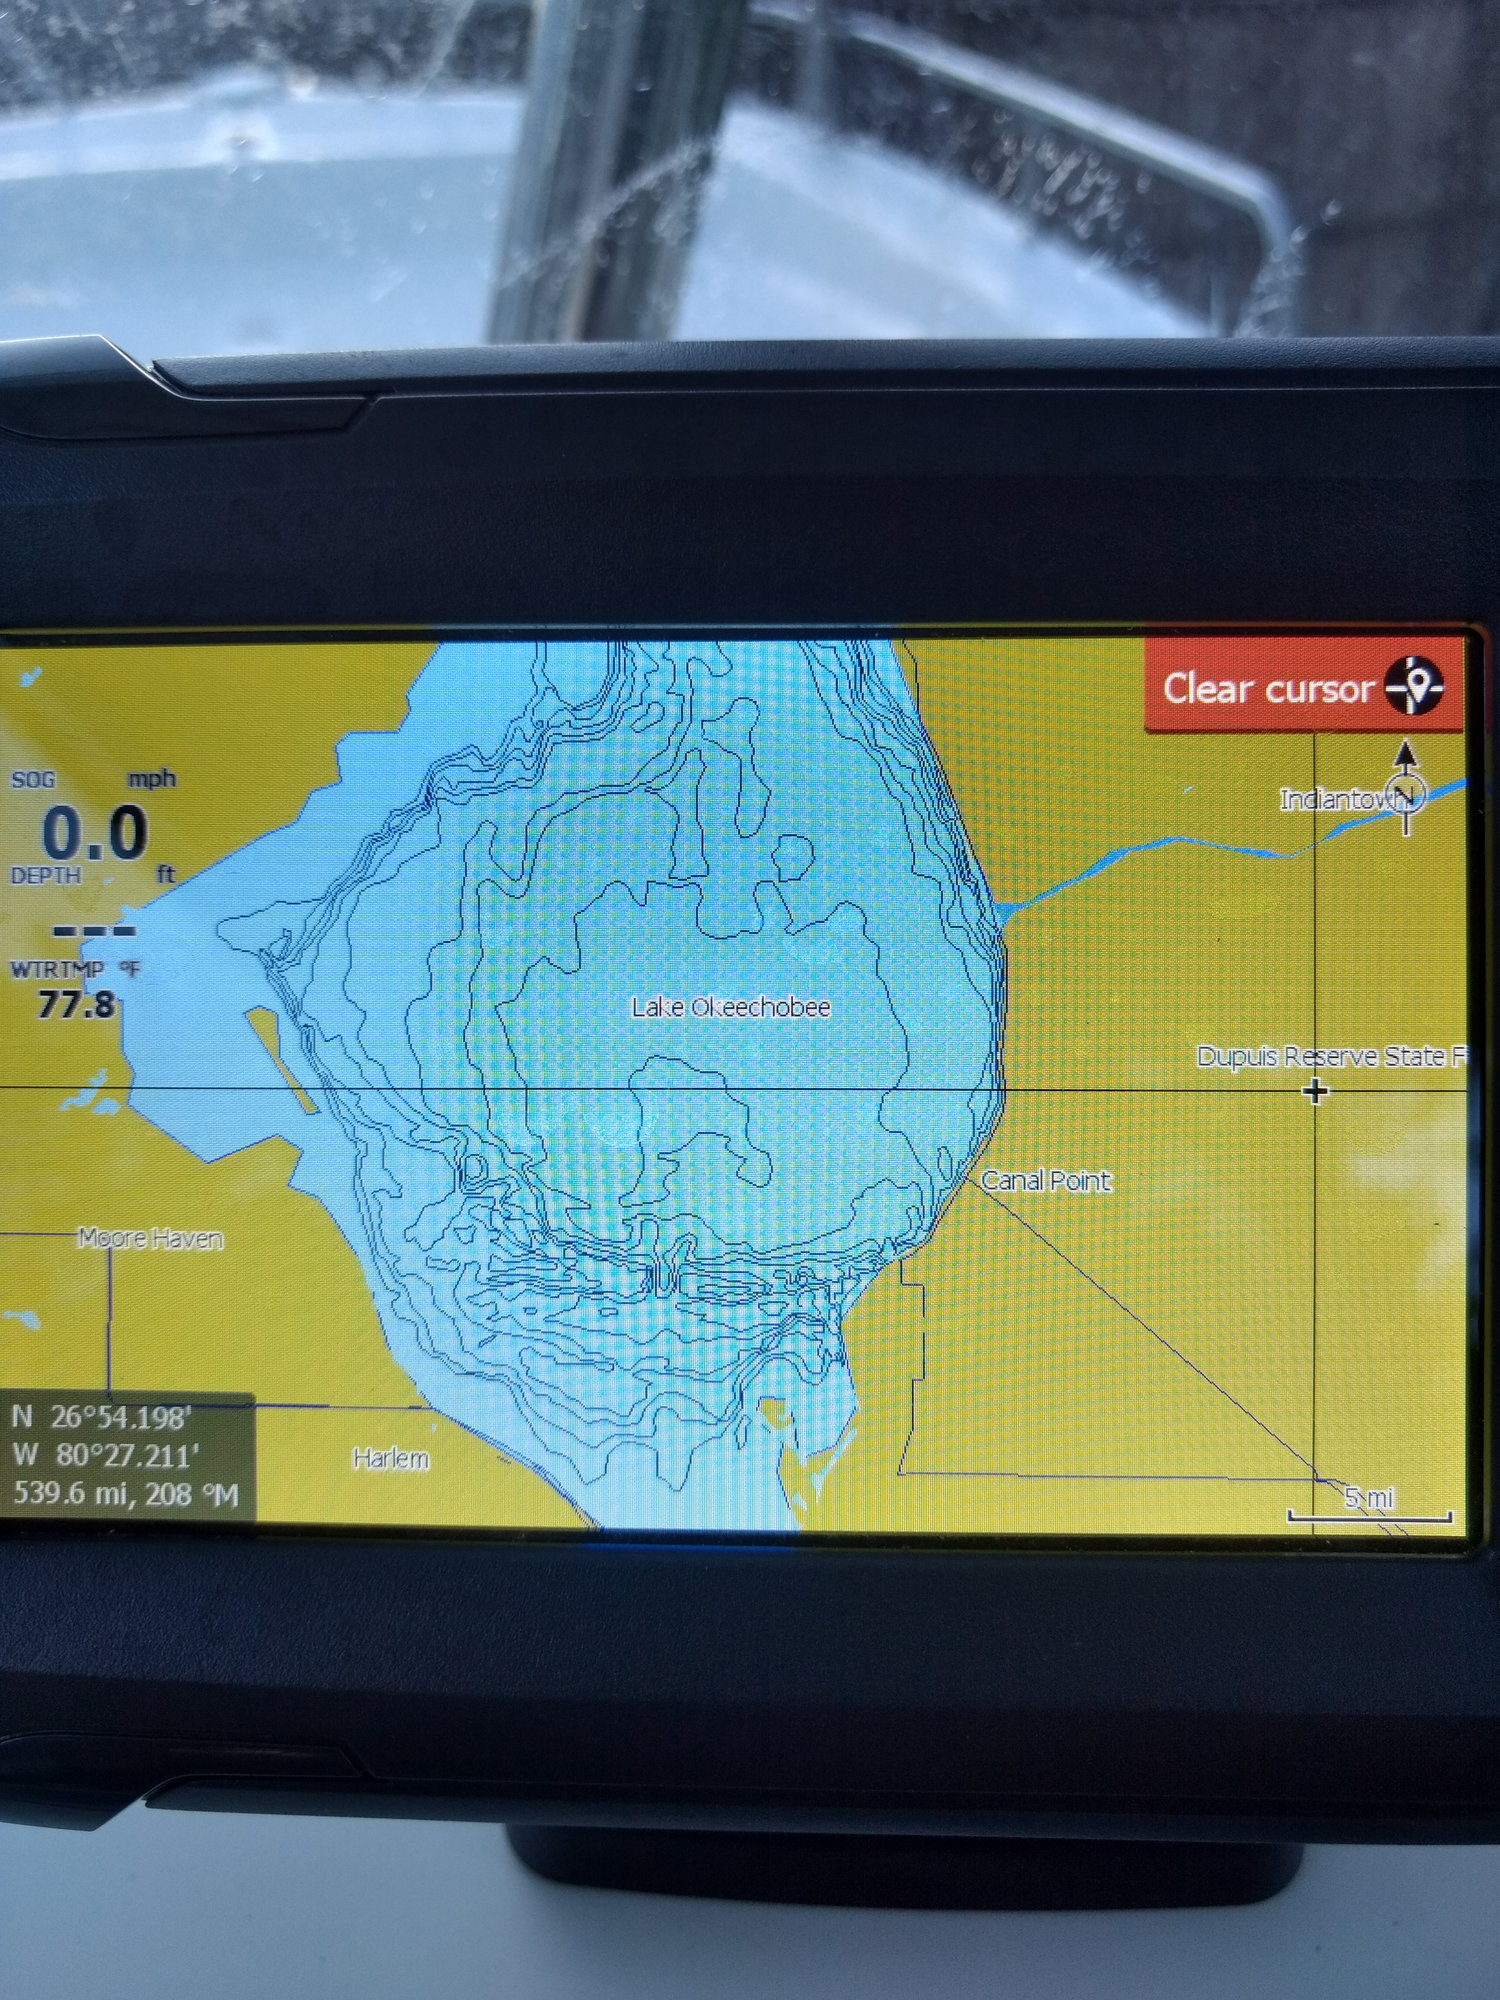 Lowrance Hook2 5 Mapping issues - The Hull Truth - Boating and